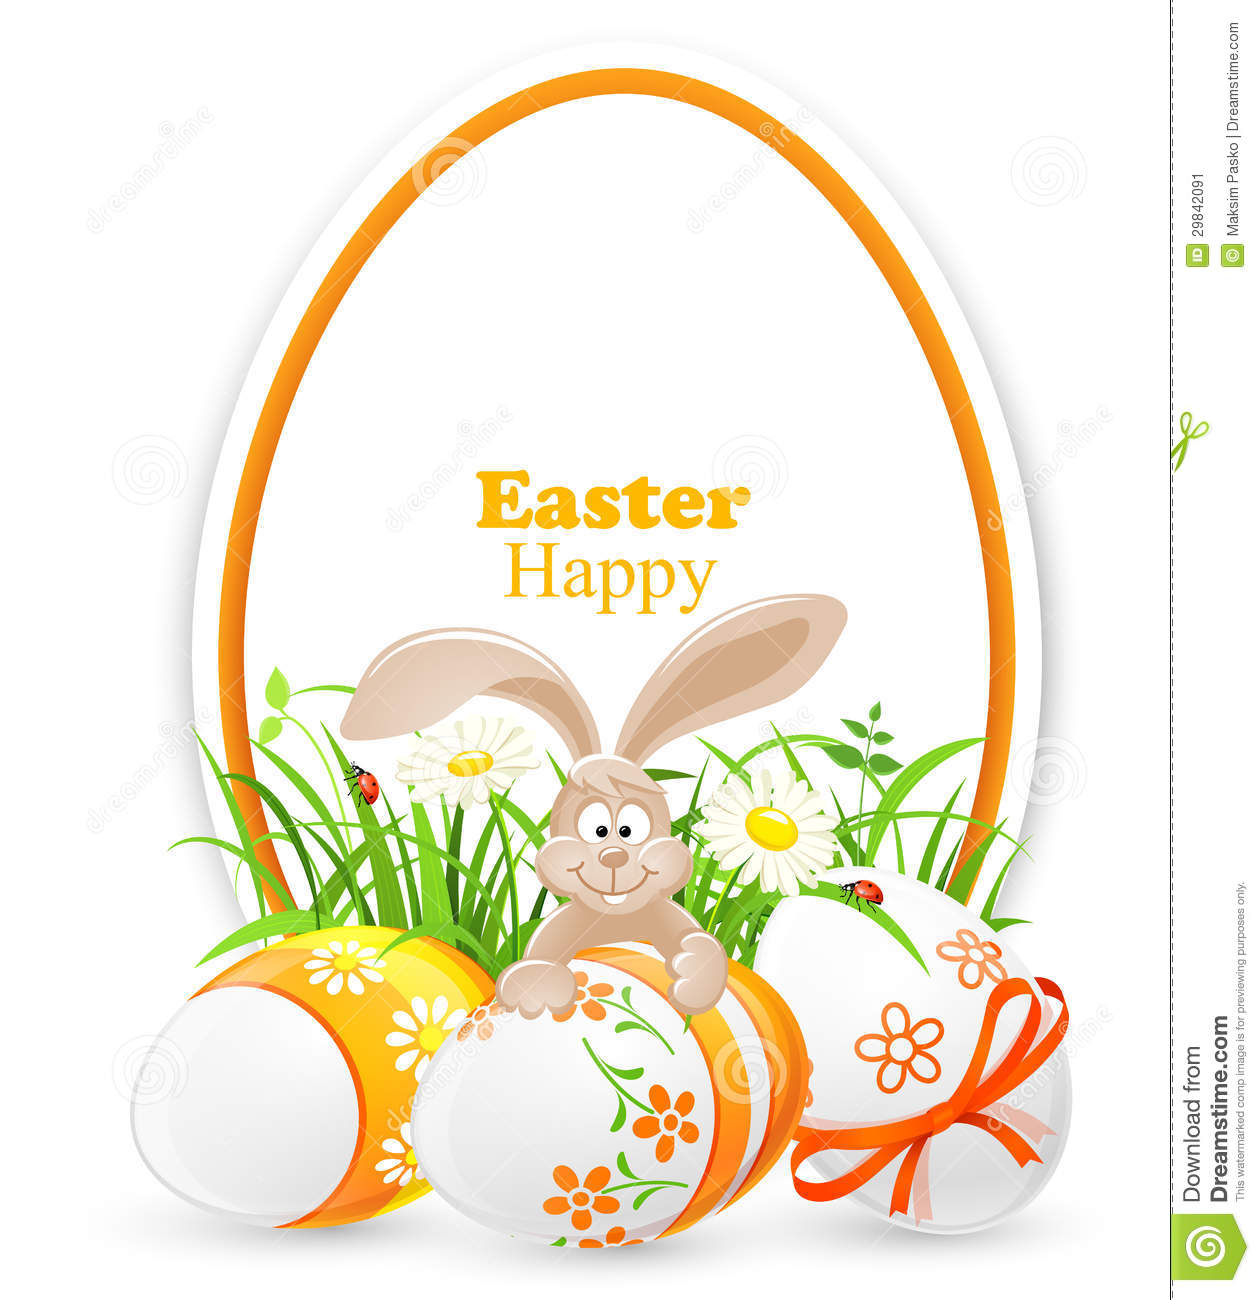 Easter Banner Stock Image - Image: 29842091